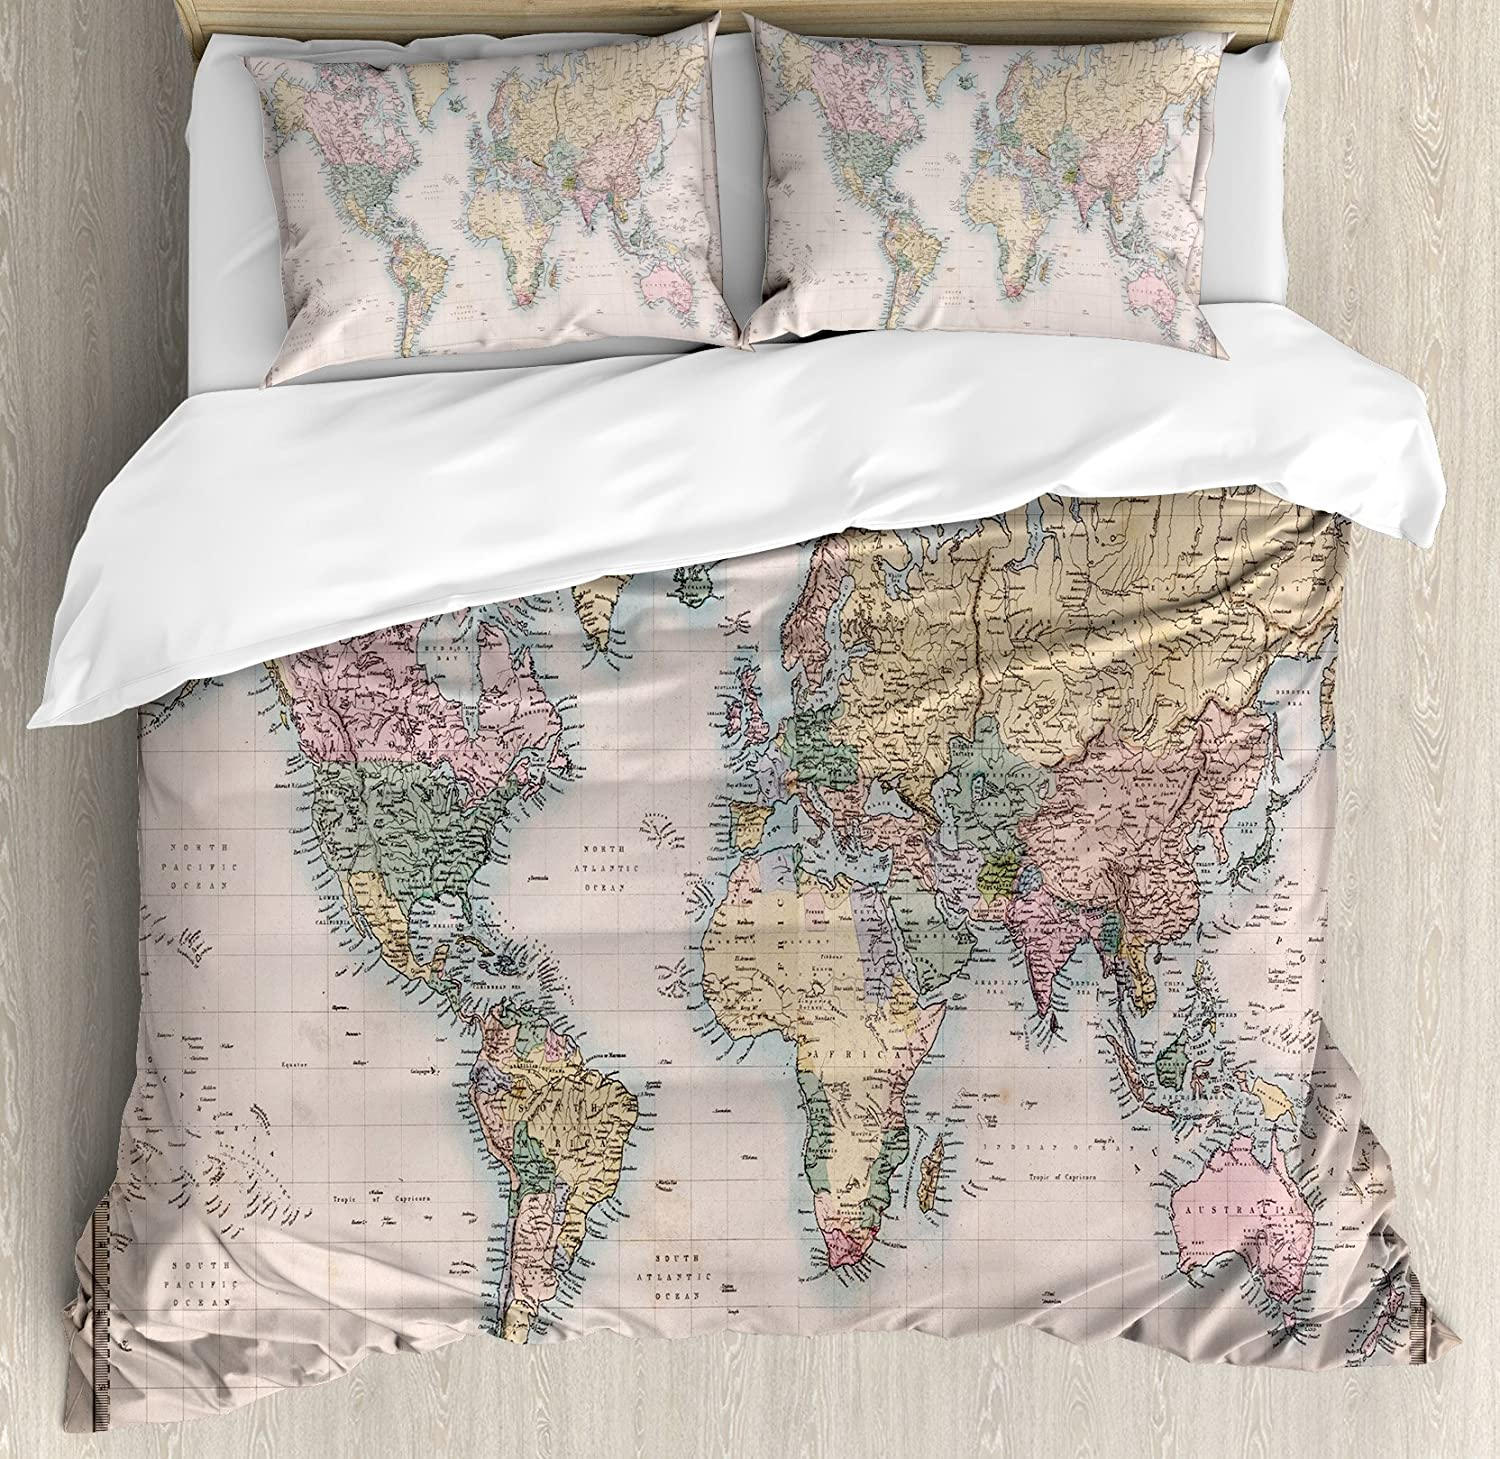 Ambesonne World Map Duvet Cover Set King Size, Original Old Hand Colored  Map of The World Anthique Chart for Old Emperors Print, Decorative 3 Piece  ...